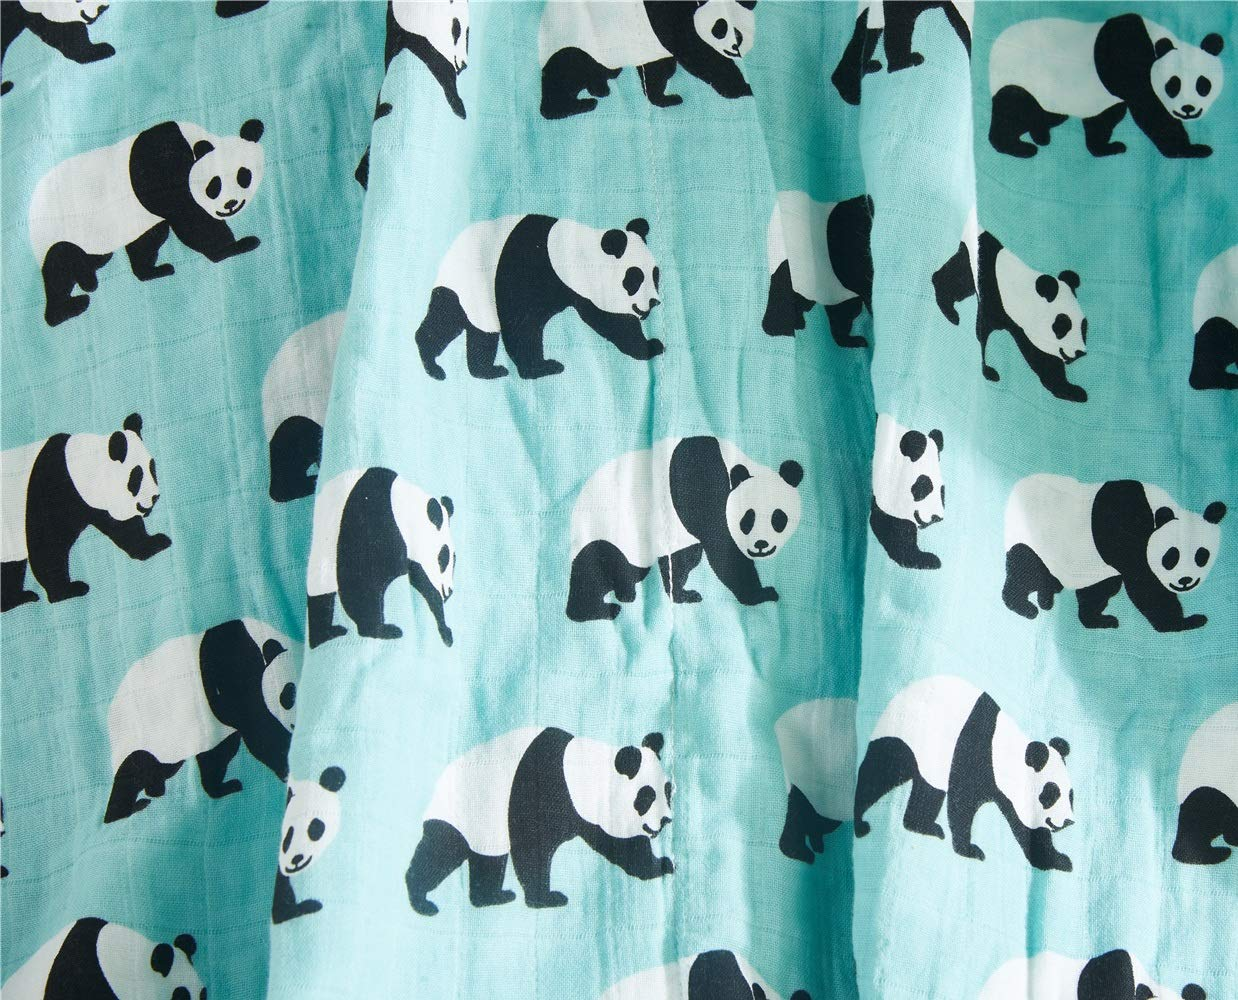 Stroller Cover Baby Bath Towels Cute Panda, 47x47 inch Cozyholy Fancy Design 100/% Cotton Baby Muslin Swaddle Blankets Swaddle Wrap Receiving Blanket